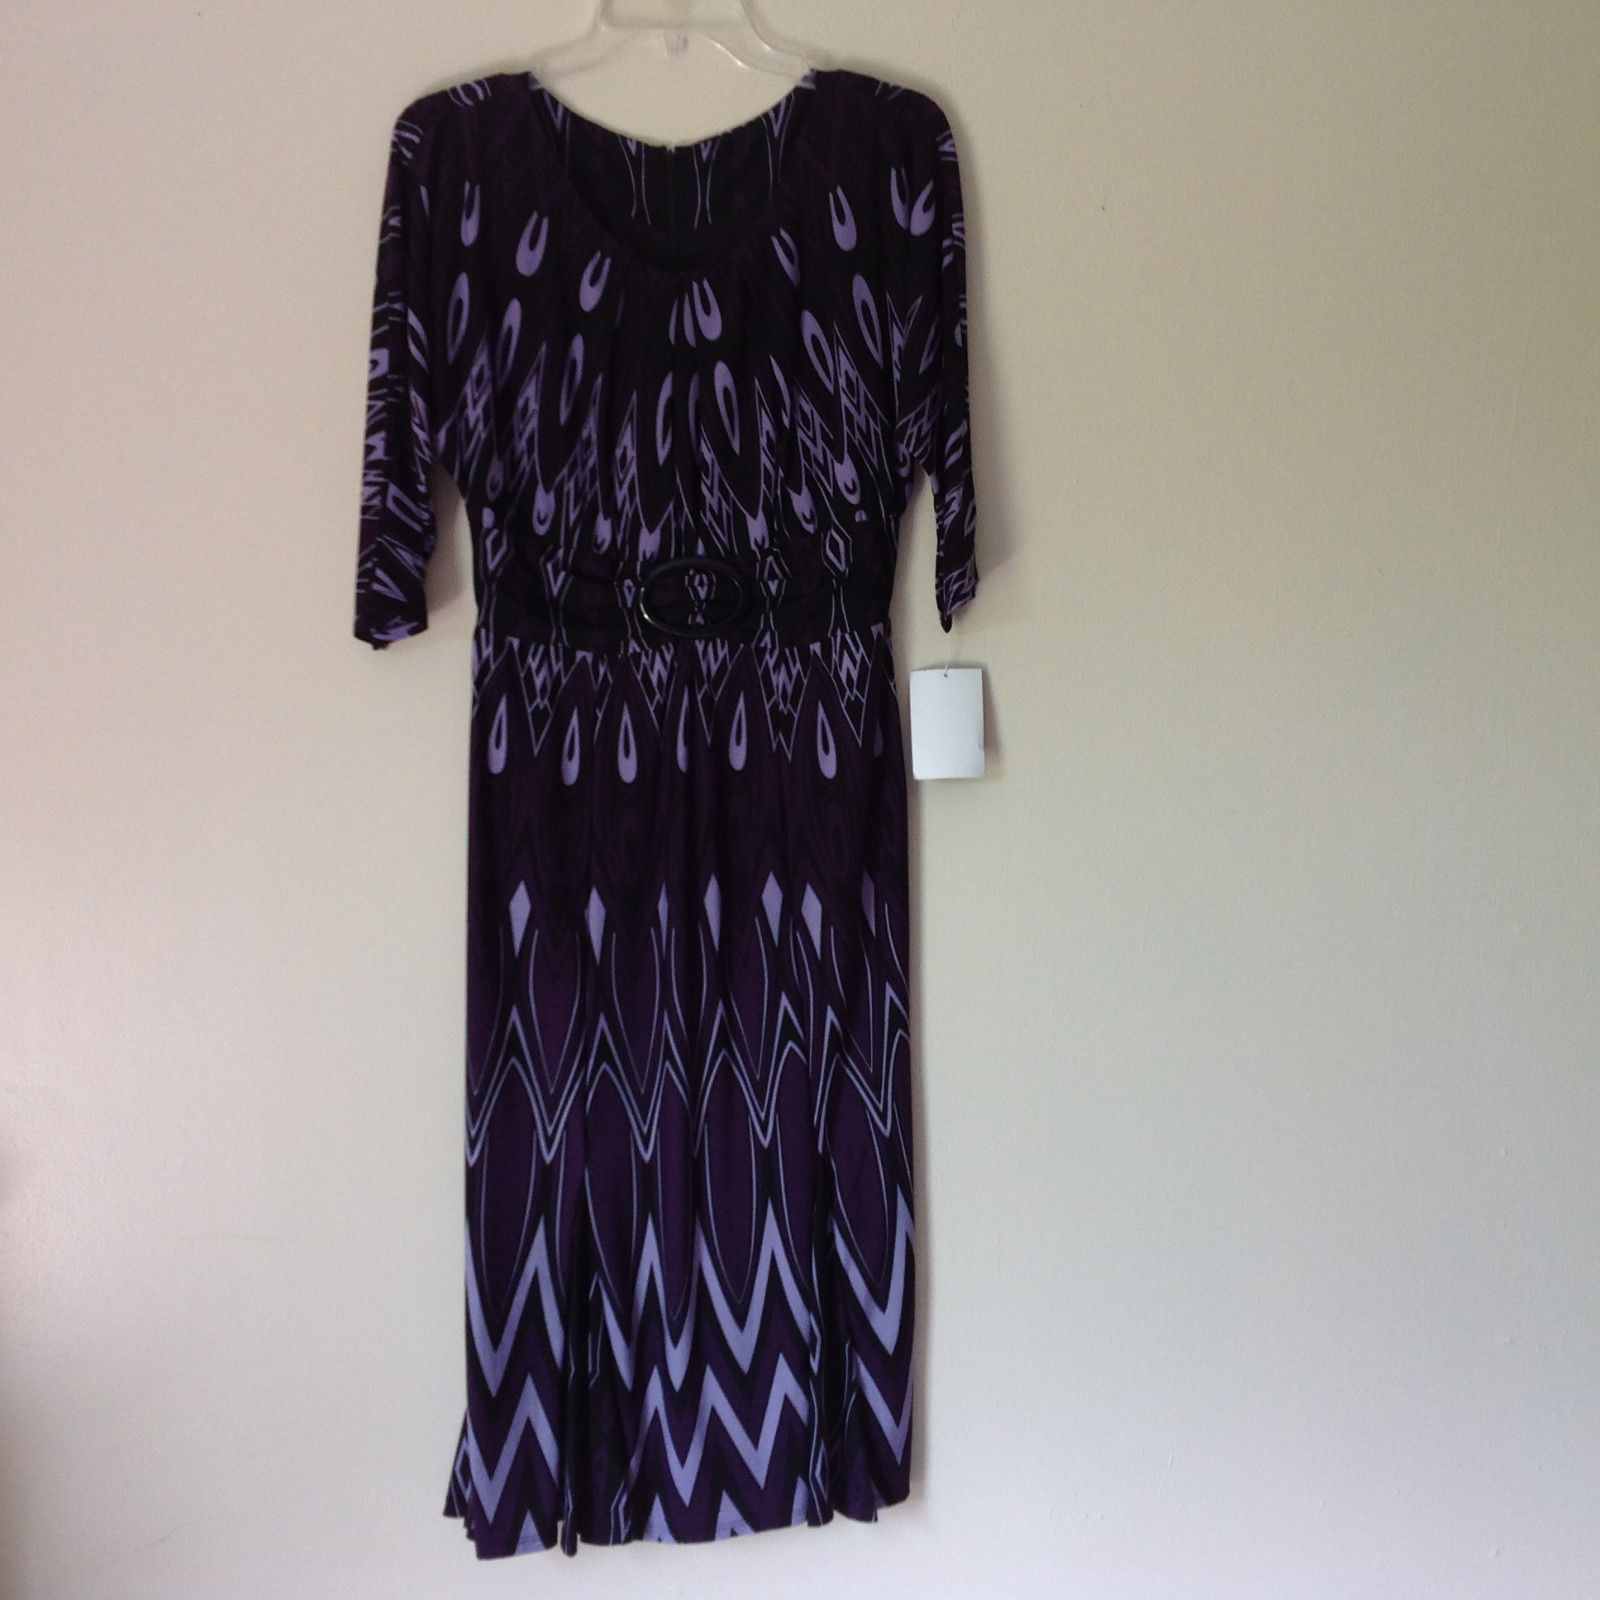 Size 8 NEW with Tag Purple Light Purple and Black Design Dress Zipper